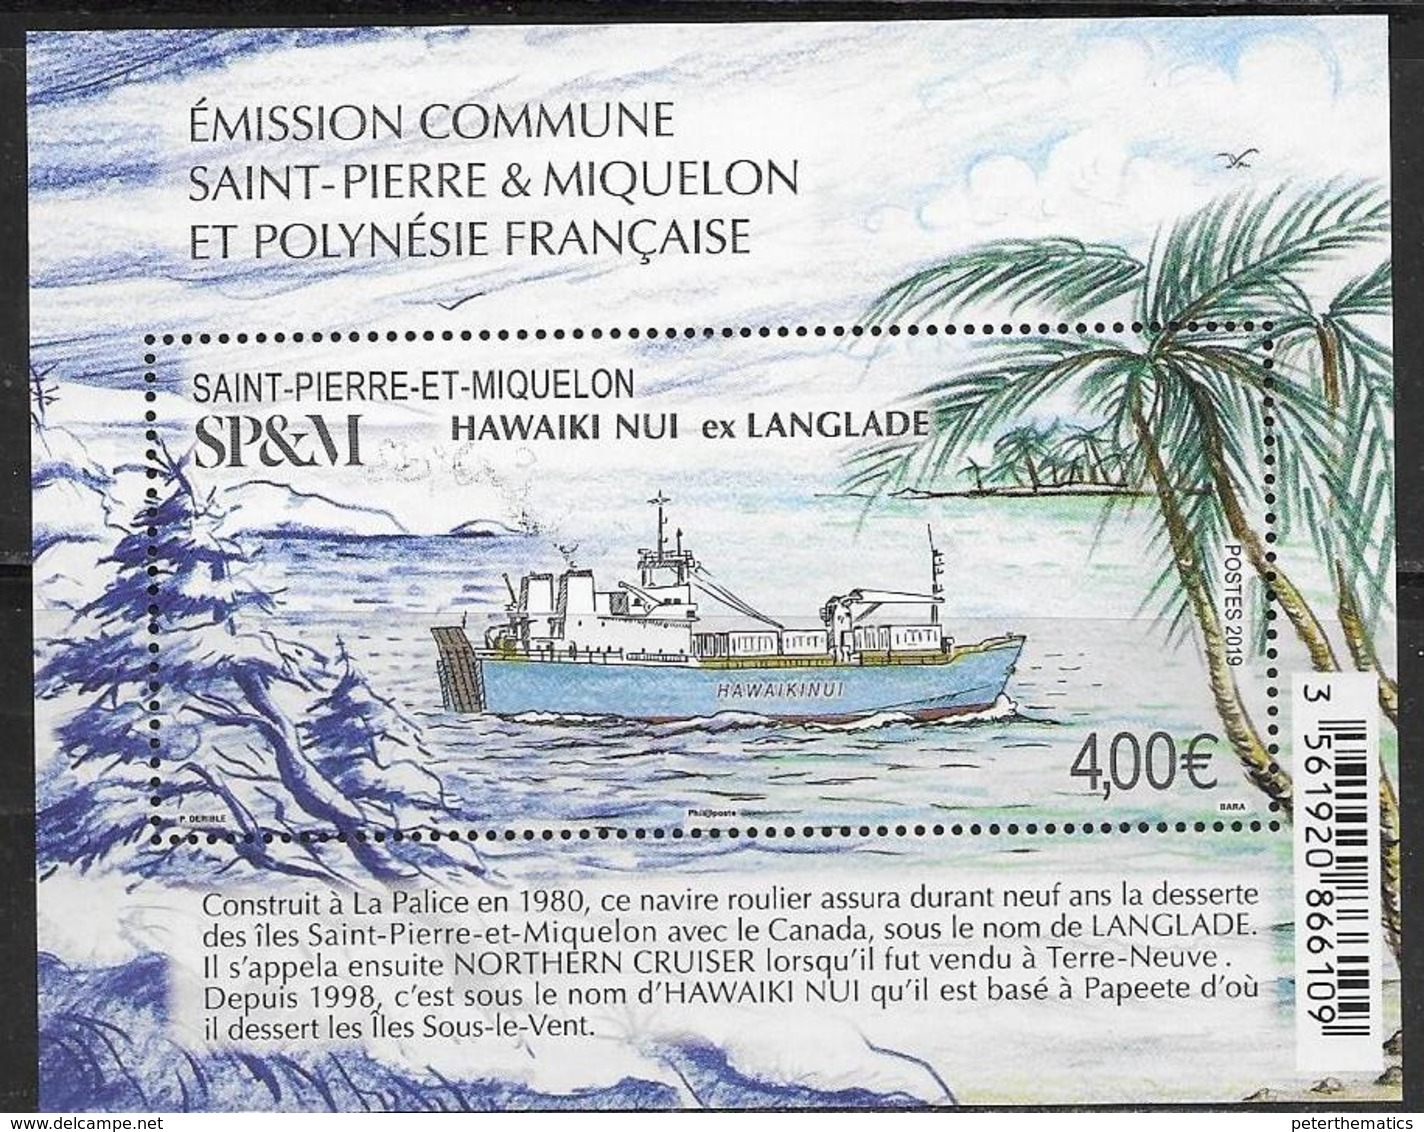 ST. PIERRE ET MIQUELON, SPM, 2019, MNH, JOINT ISSUE WITH FRENCH POLYNESIA, SHIPS, HAWAIKI NUI ( EX. LANGLADE) , S/SHEET - Emissions Communes